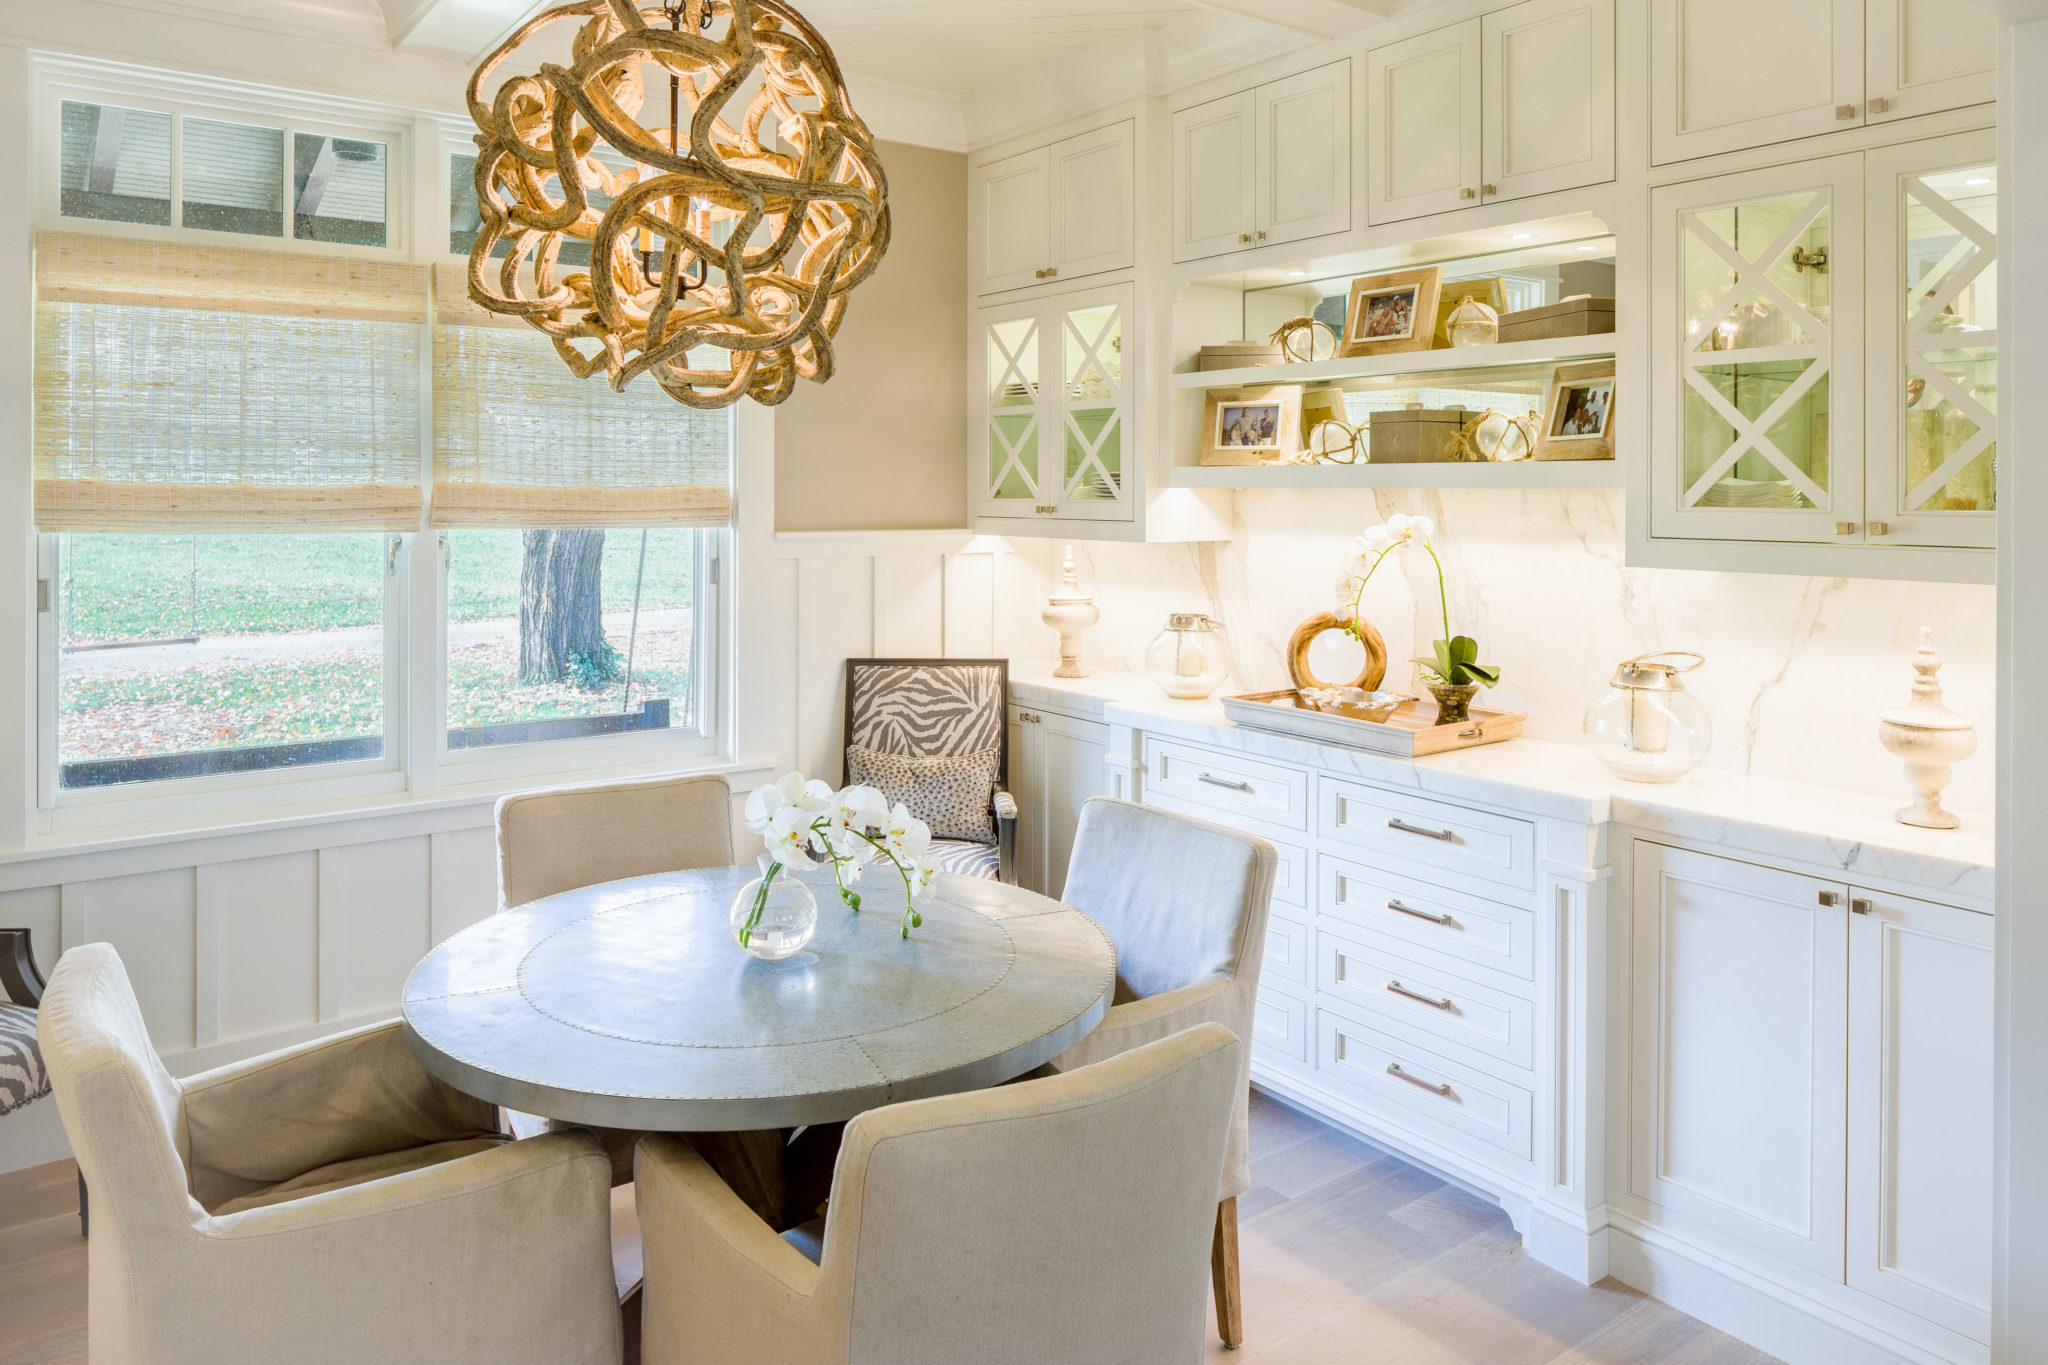 Annapolis. MD Residence - Architectural Design Studios 7